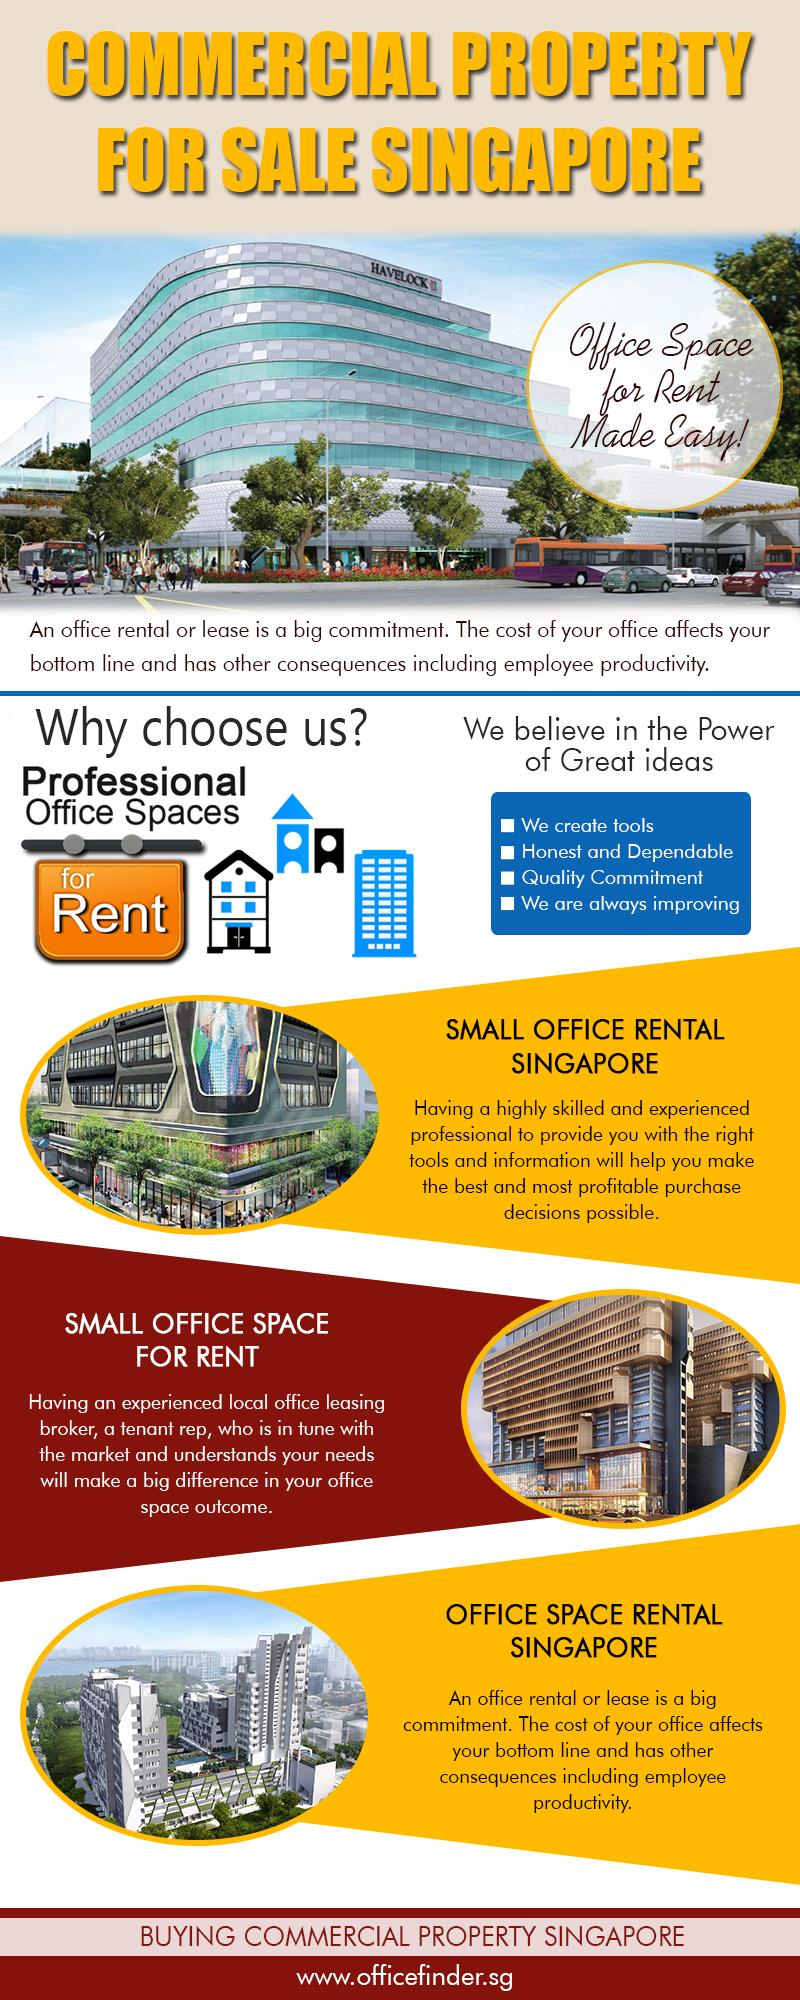 Small Office Space For Rent (